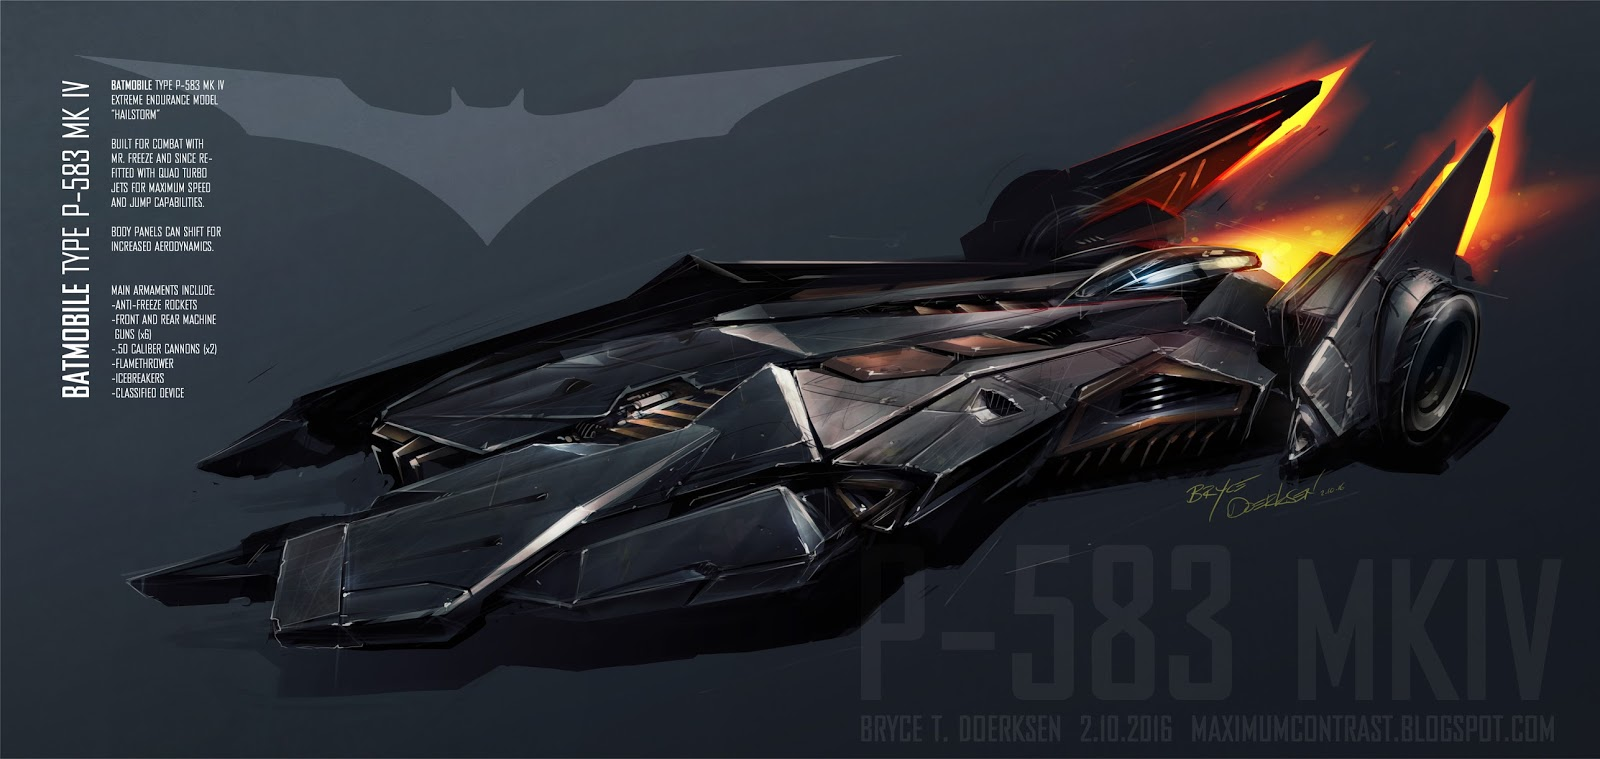 MAXIMUM CONTRAST: Batmobile Concept